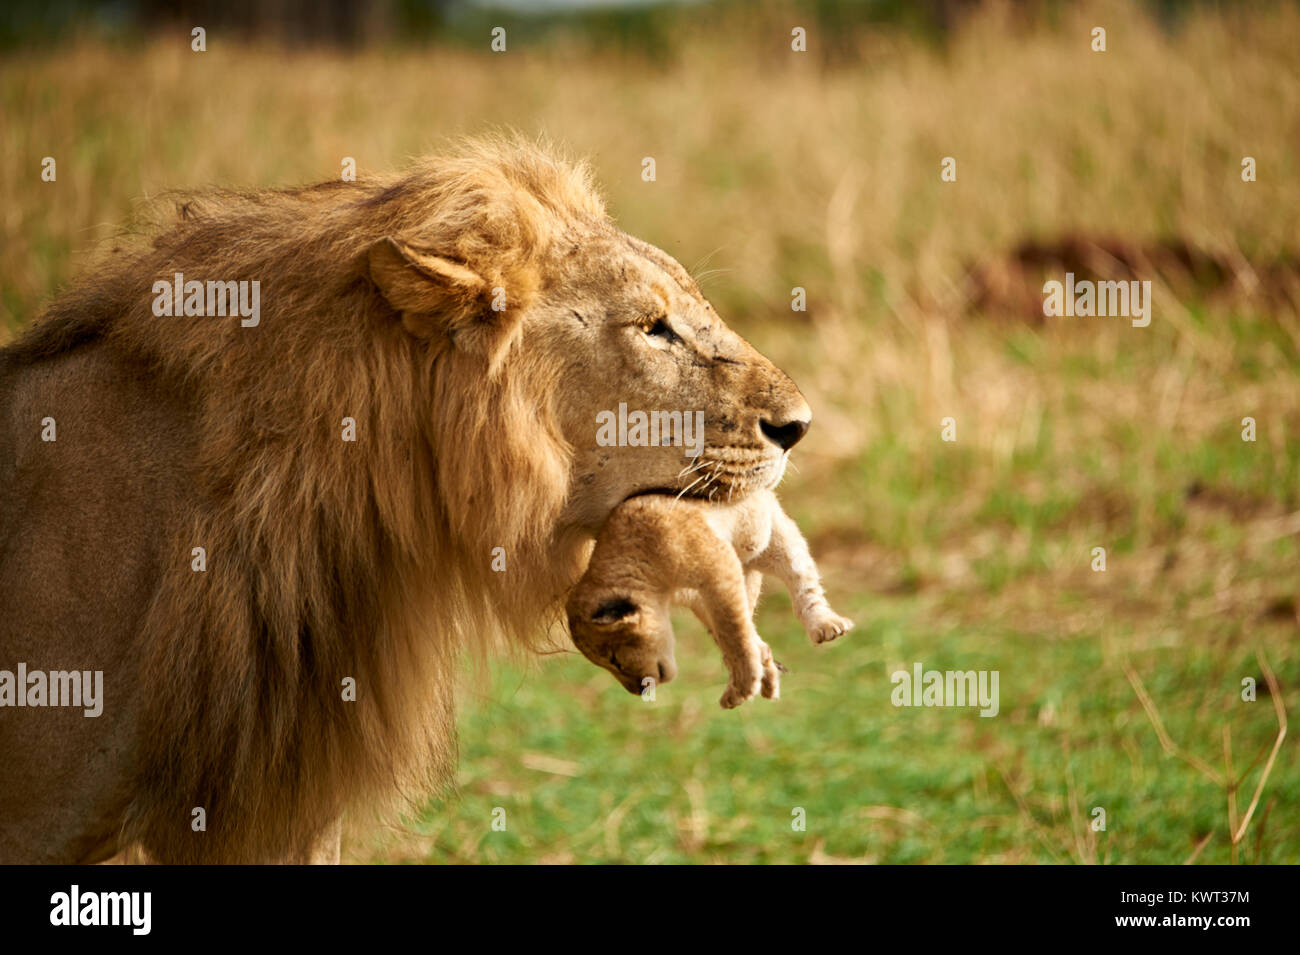 Male lion carrying one of its cubs - Stock Image